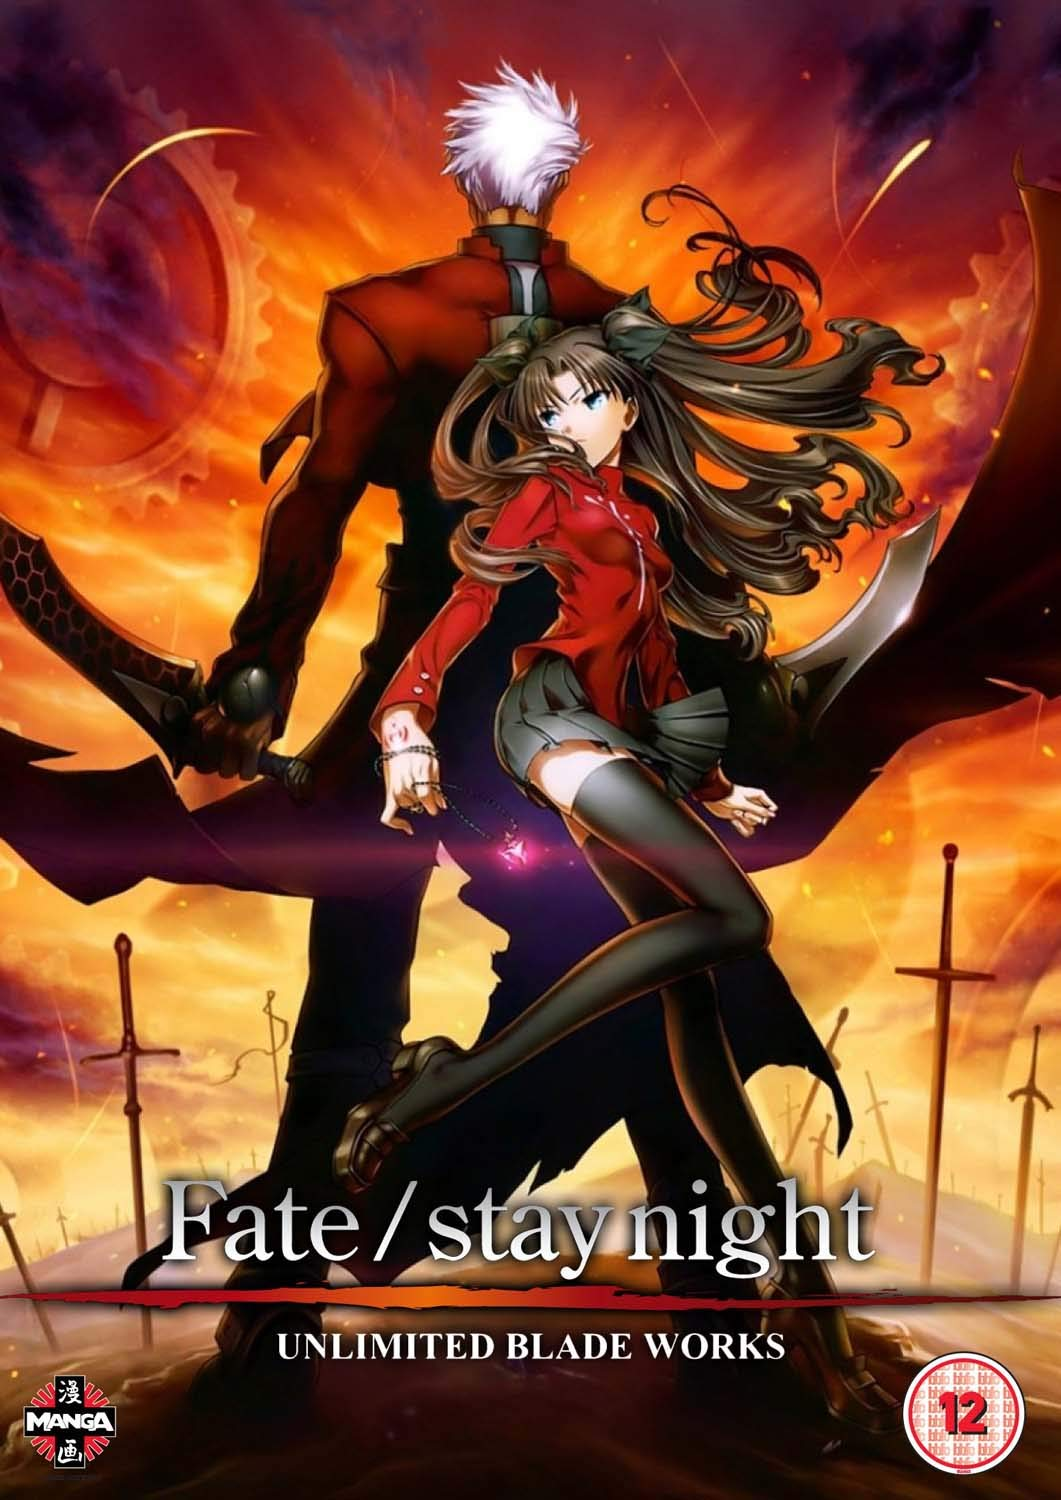 Fate/stay night: Unlimited Blade Works - Vô Hạn Kiếm Giới | Fate Stay night: Unlimited Blade Works (2014)